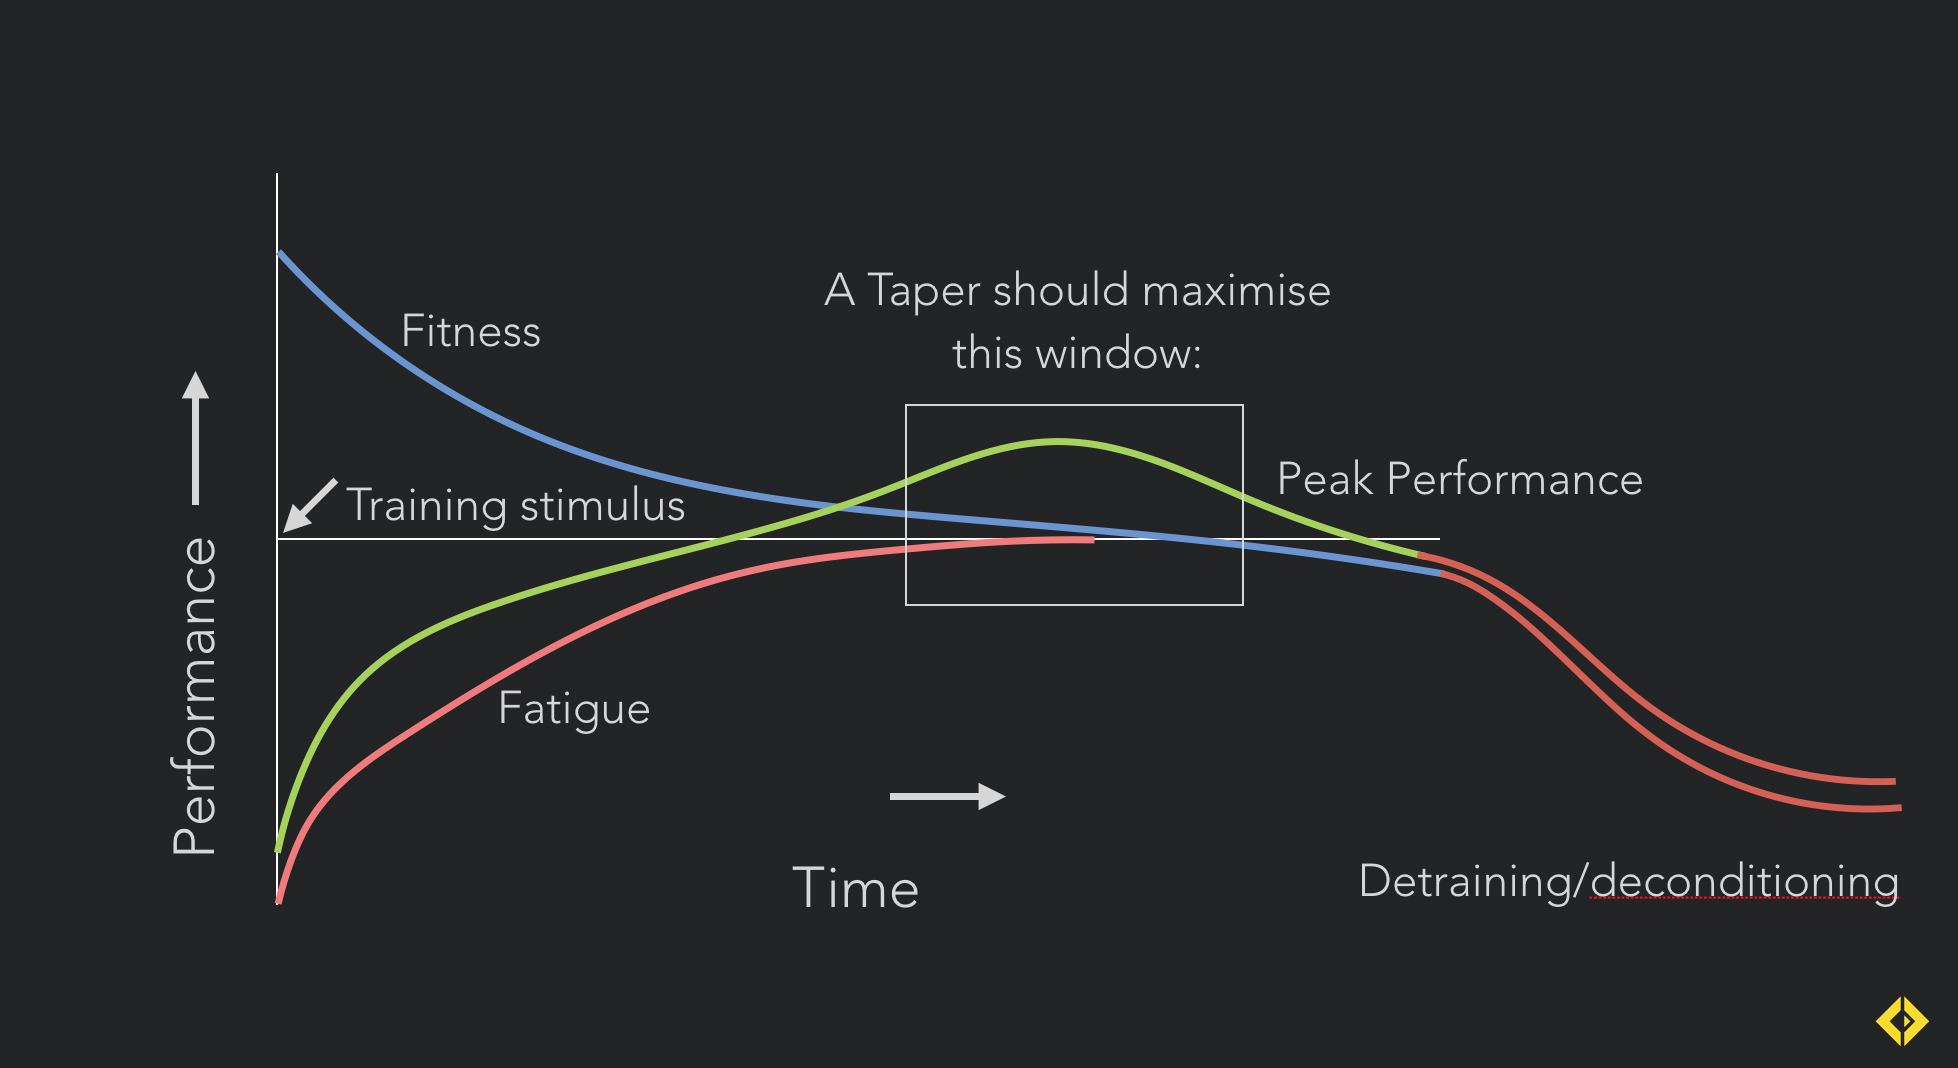 Fatigue masks fitness: When tapering, your window of peak performance occurs when fatigue dissipates faster than fitness.